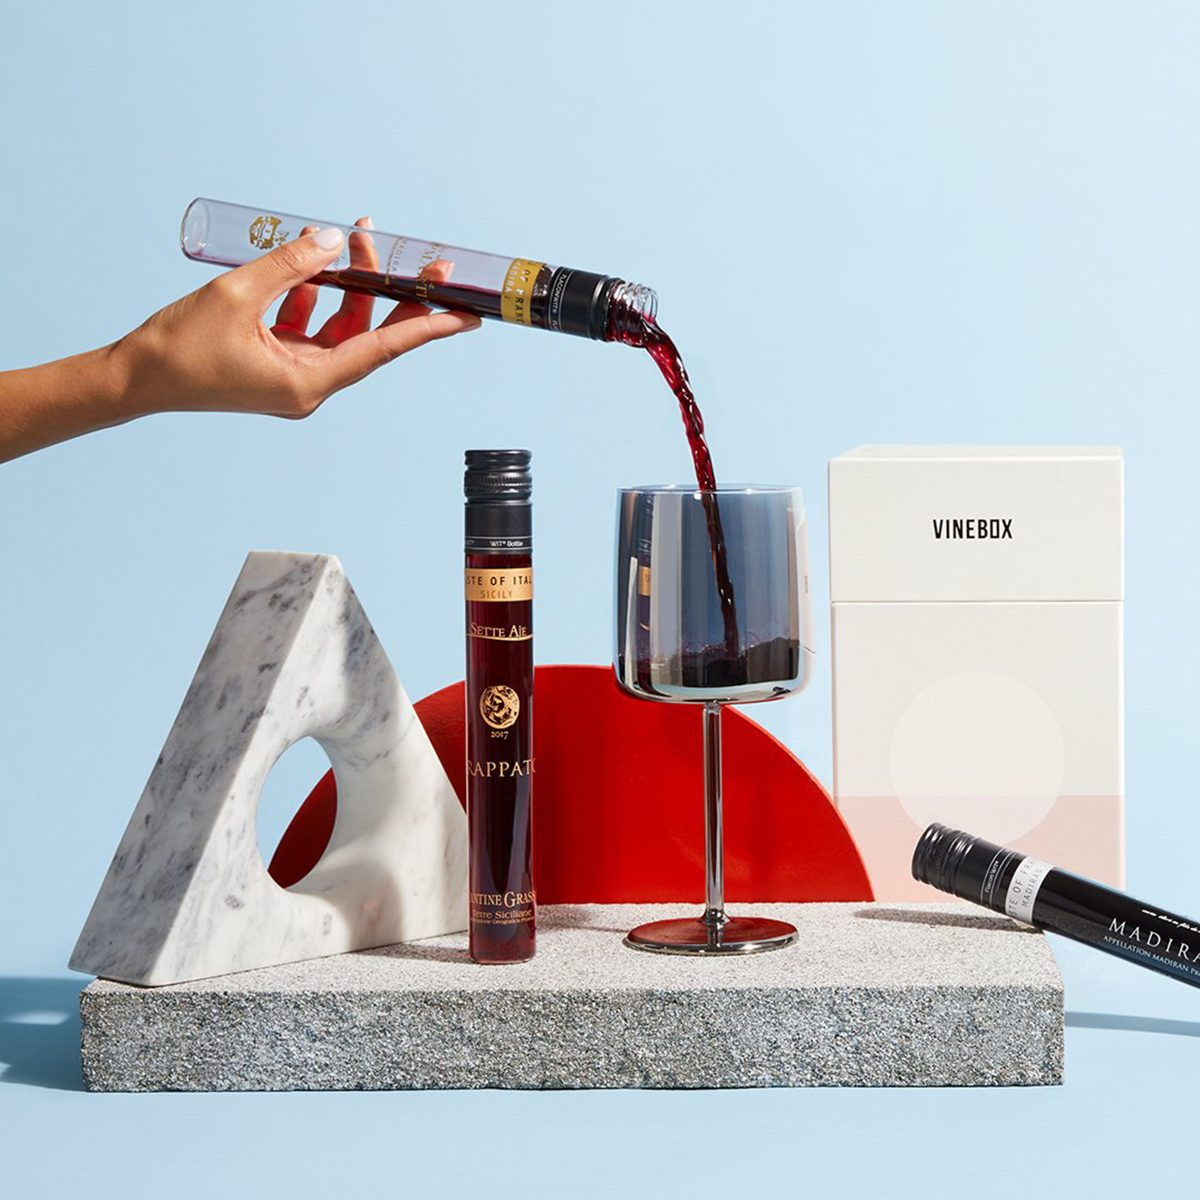 vine box hero shot pouring wine into glass packaging